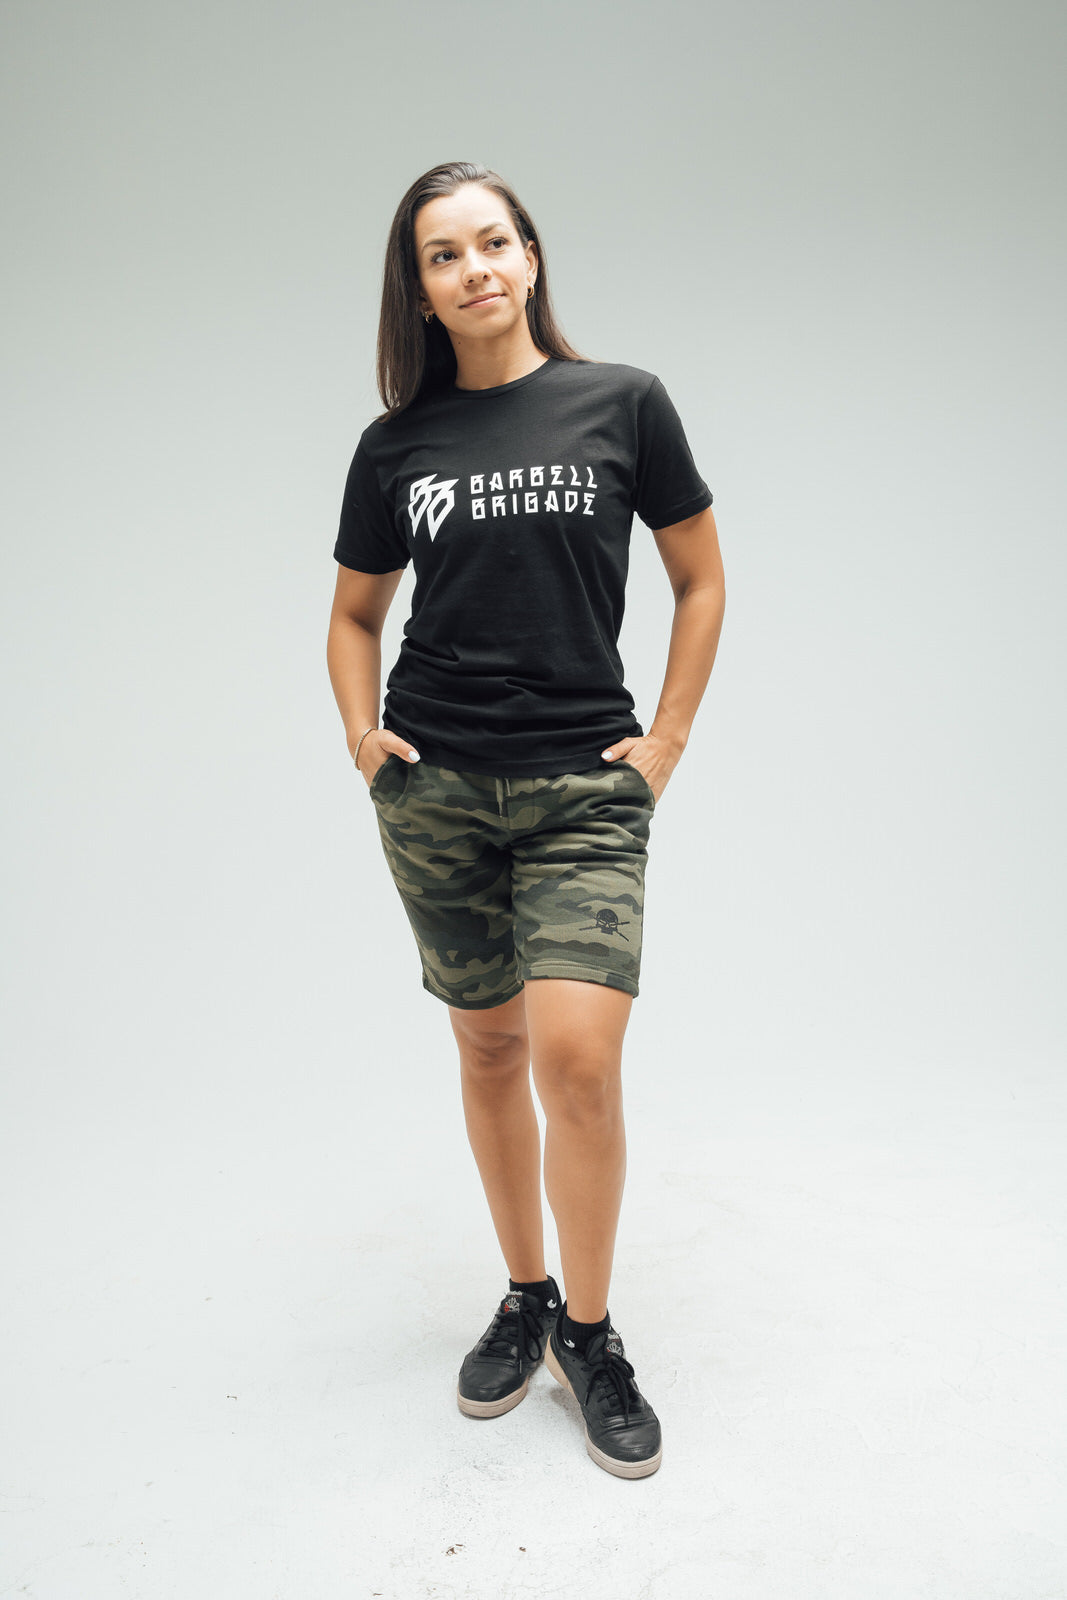 BB Horizontal - Tee (Black)